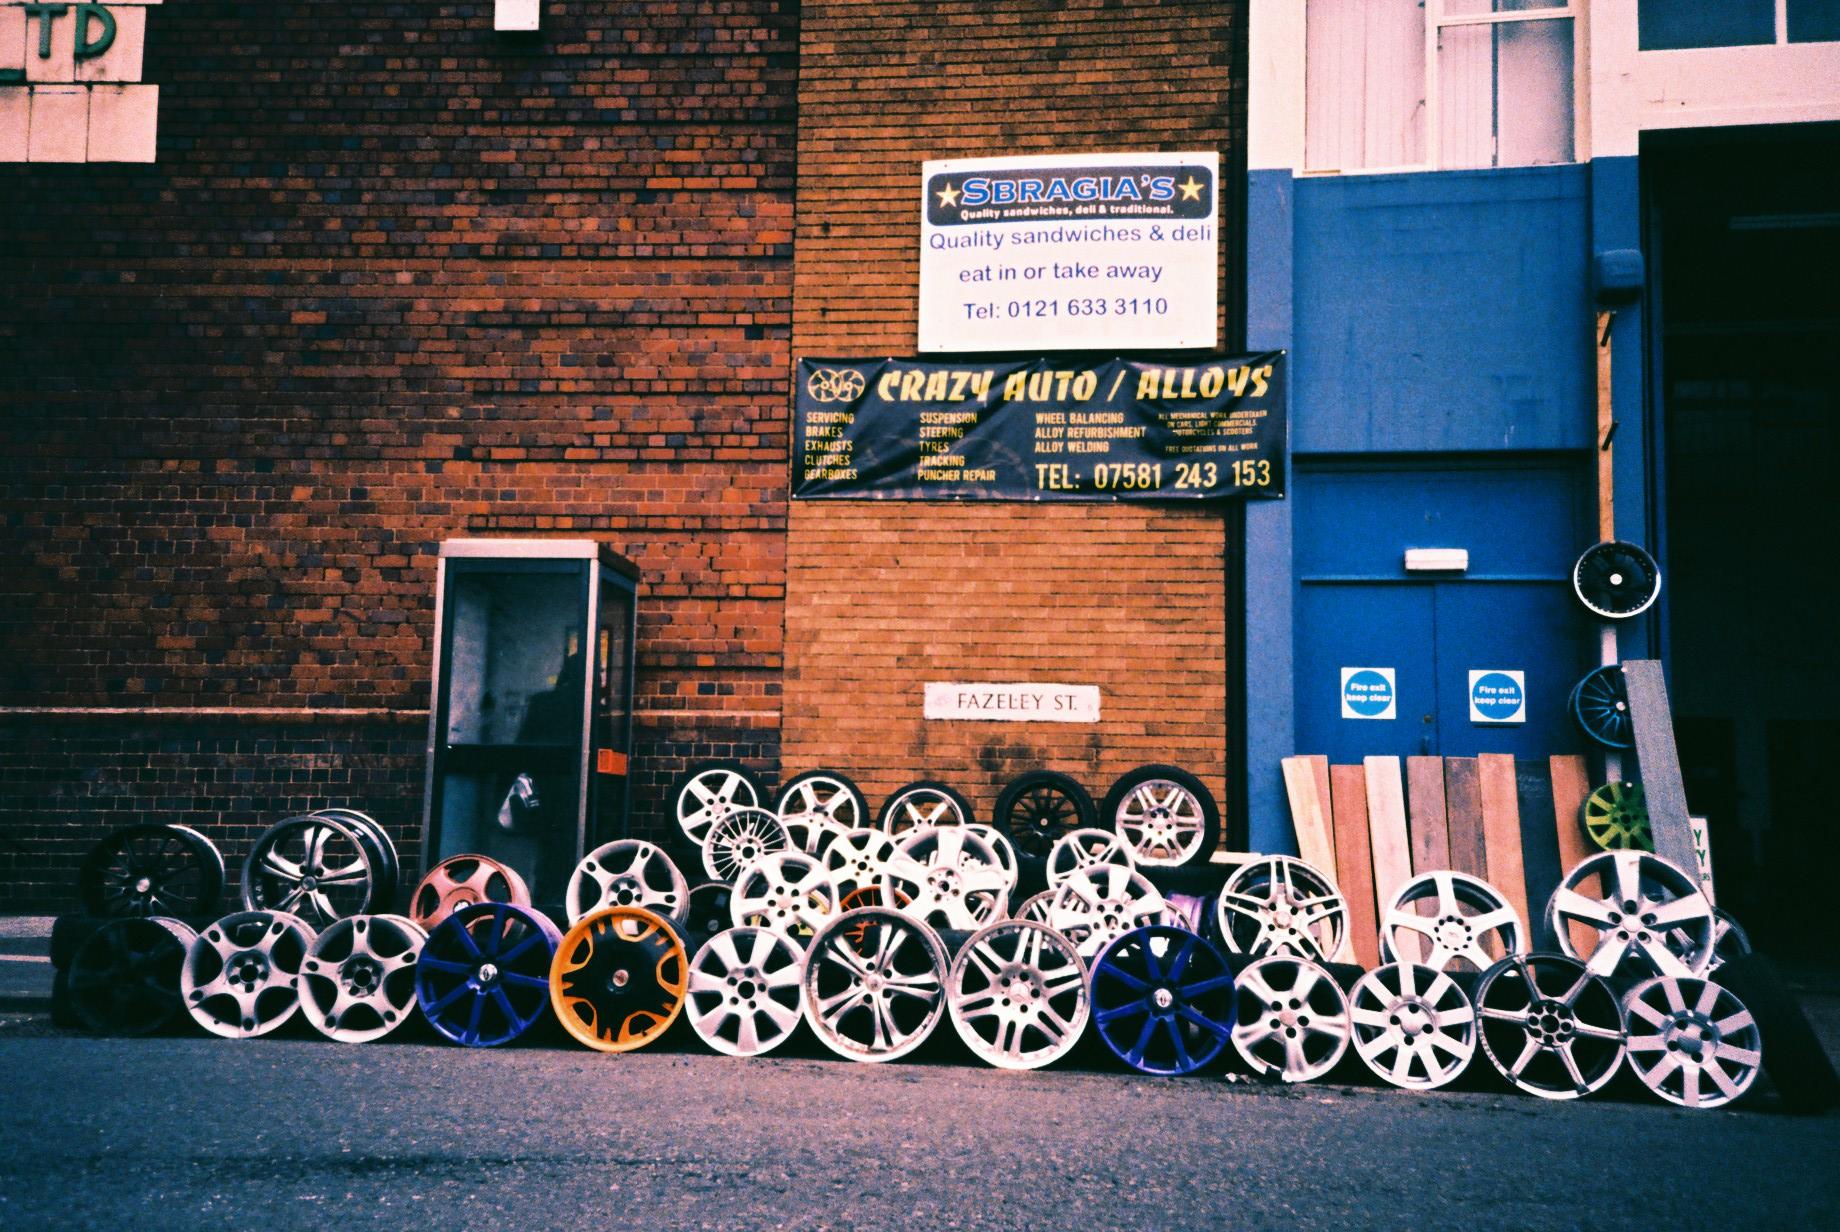 35mm Xpro Digbeth Motor Trade